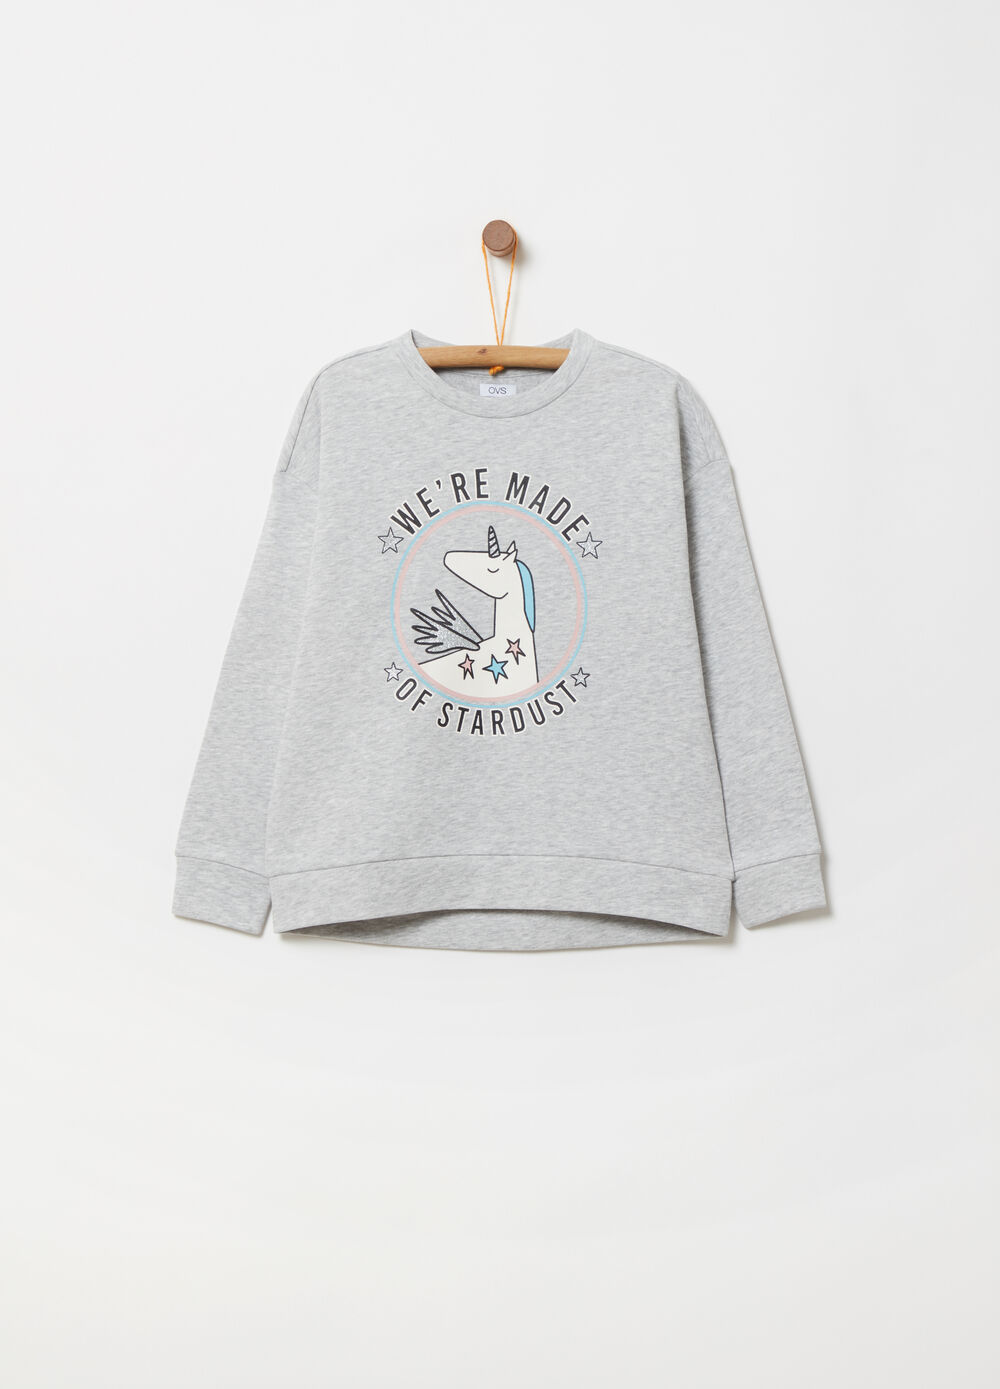 Crew neck sweatshirt with print on the front